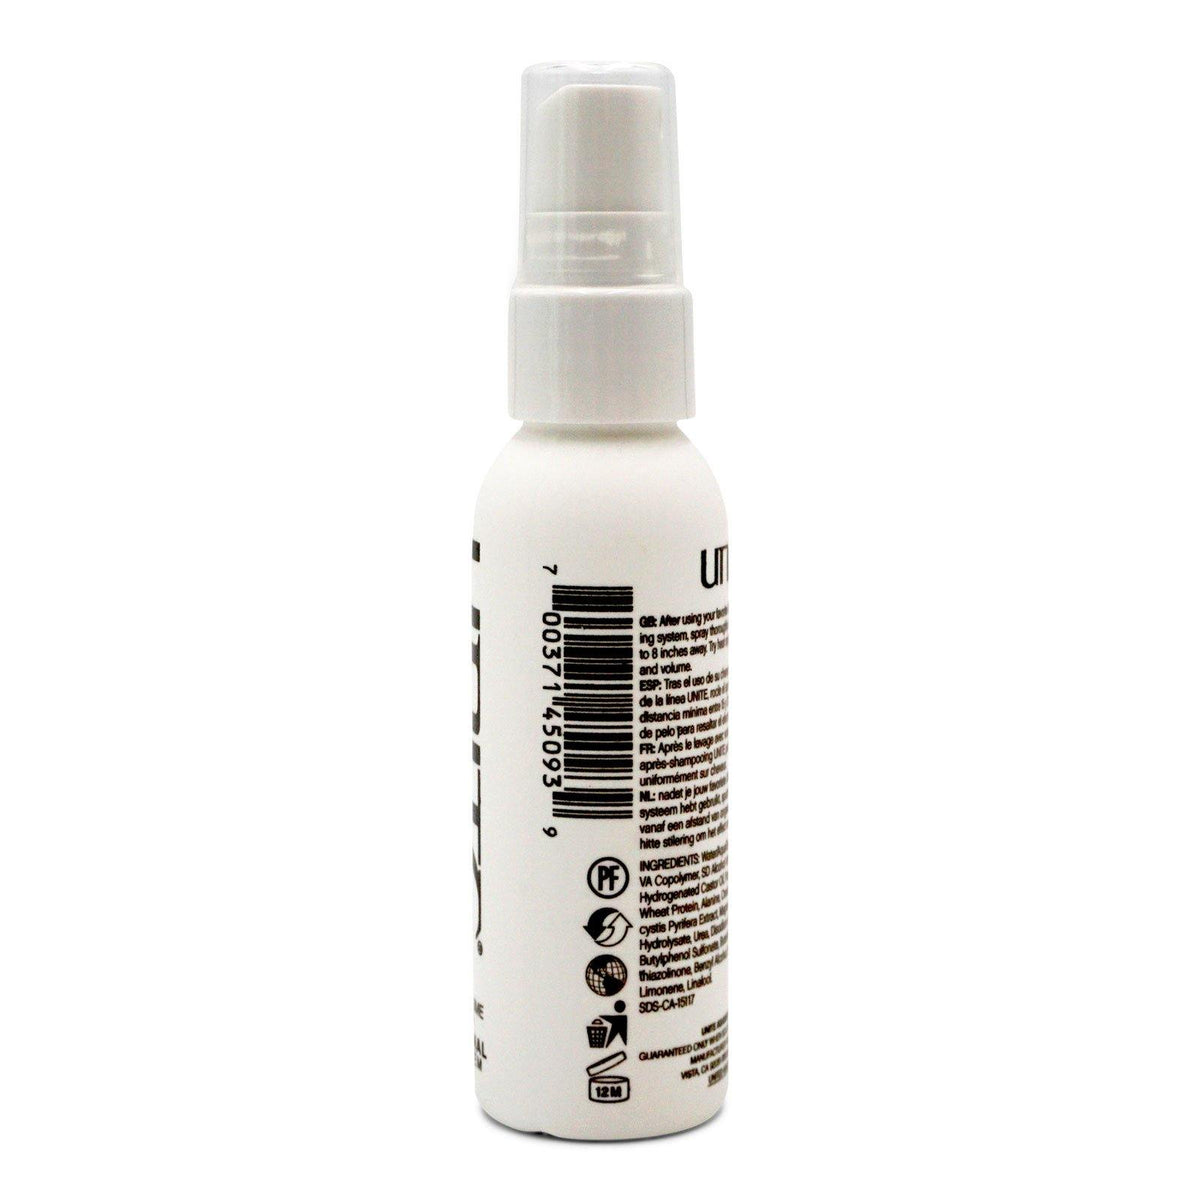 BOOSTA SPRAY Increases Body And Texture With No Residue - (2oz/59ml) (12/cs)